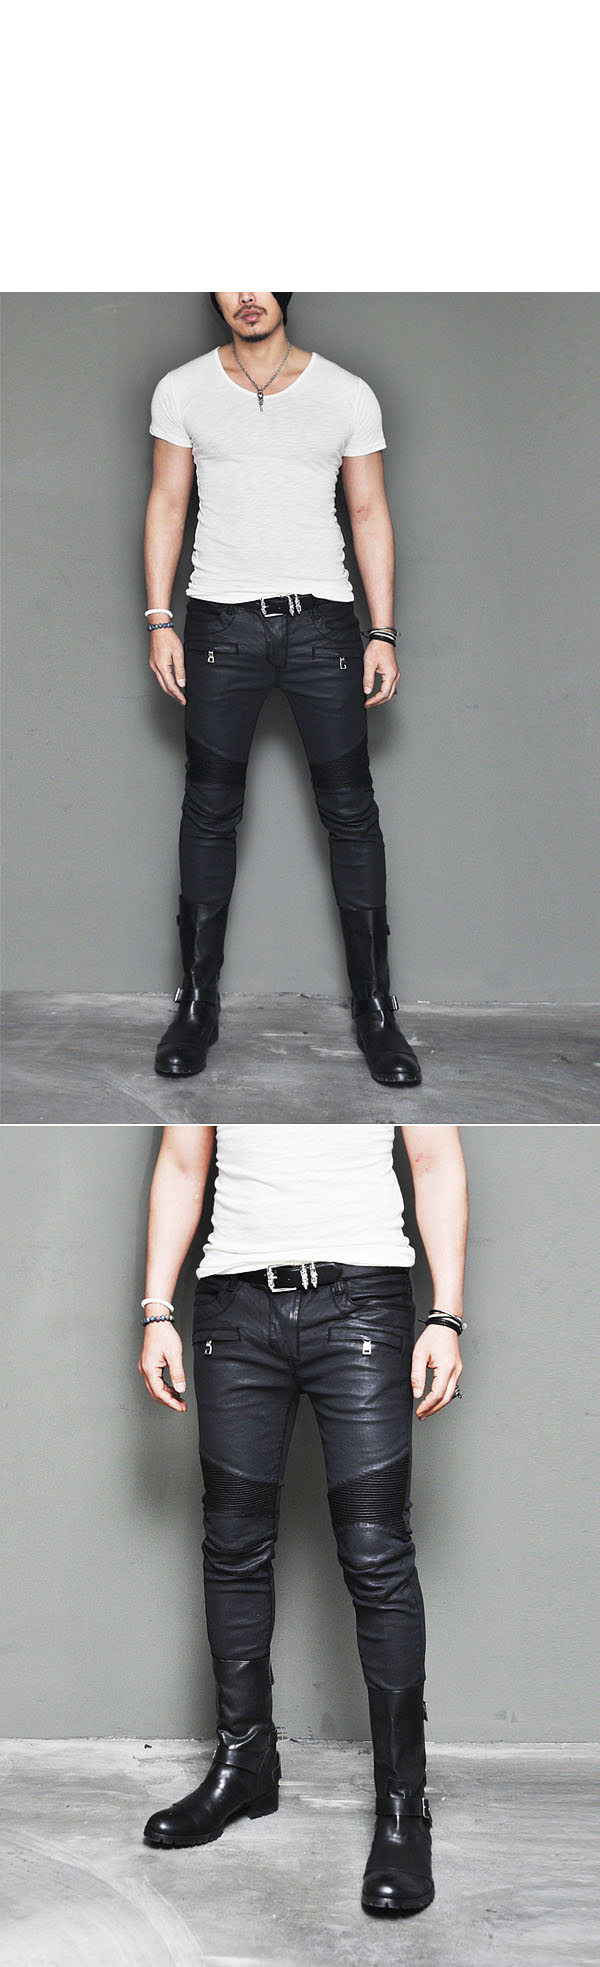 7fcdf4008b0 Mens Best Ever Wax Coated Leather Seaming Skinny Biker-Pants 109 ...